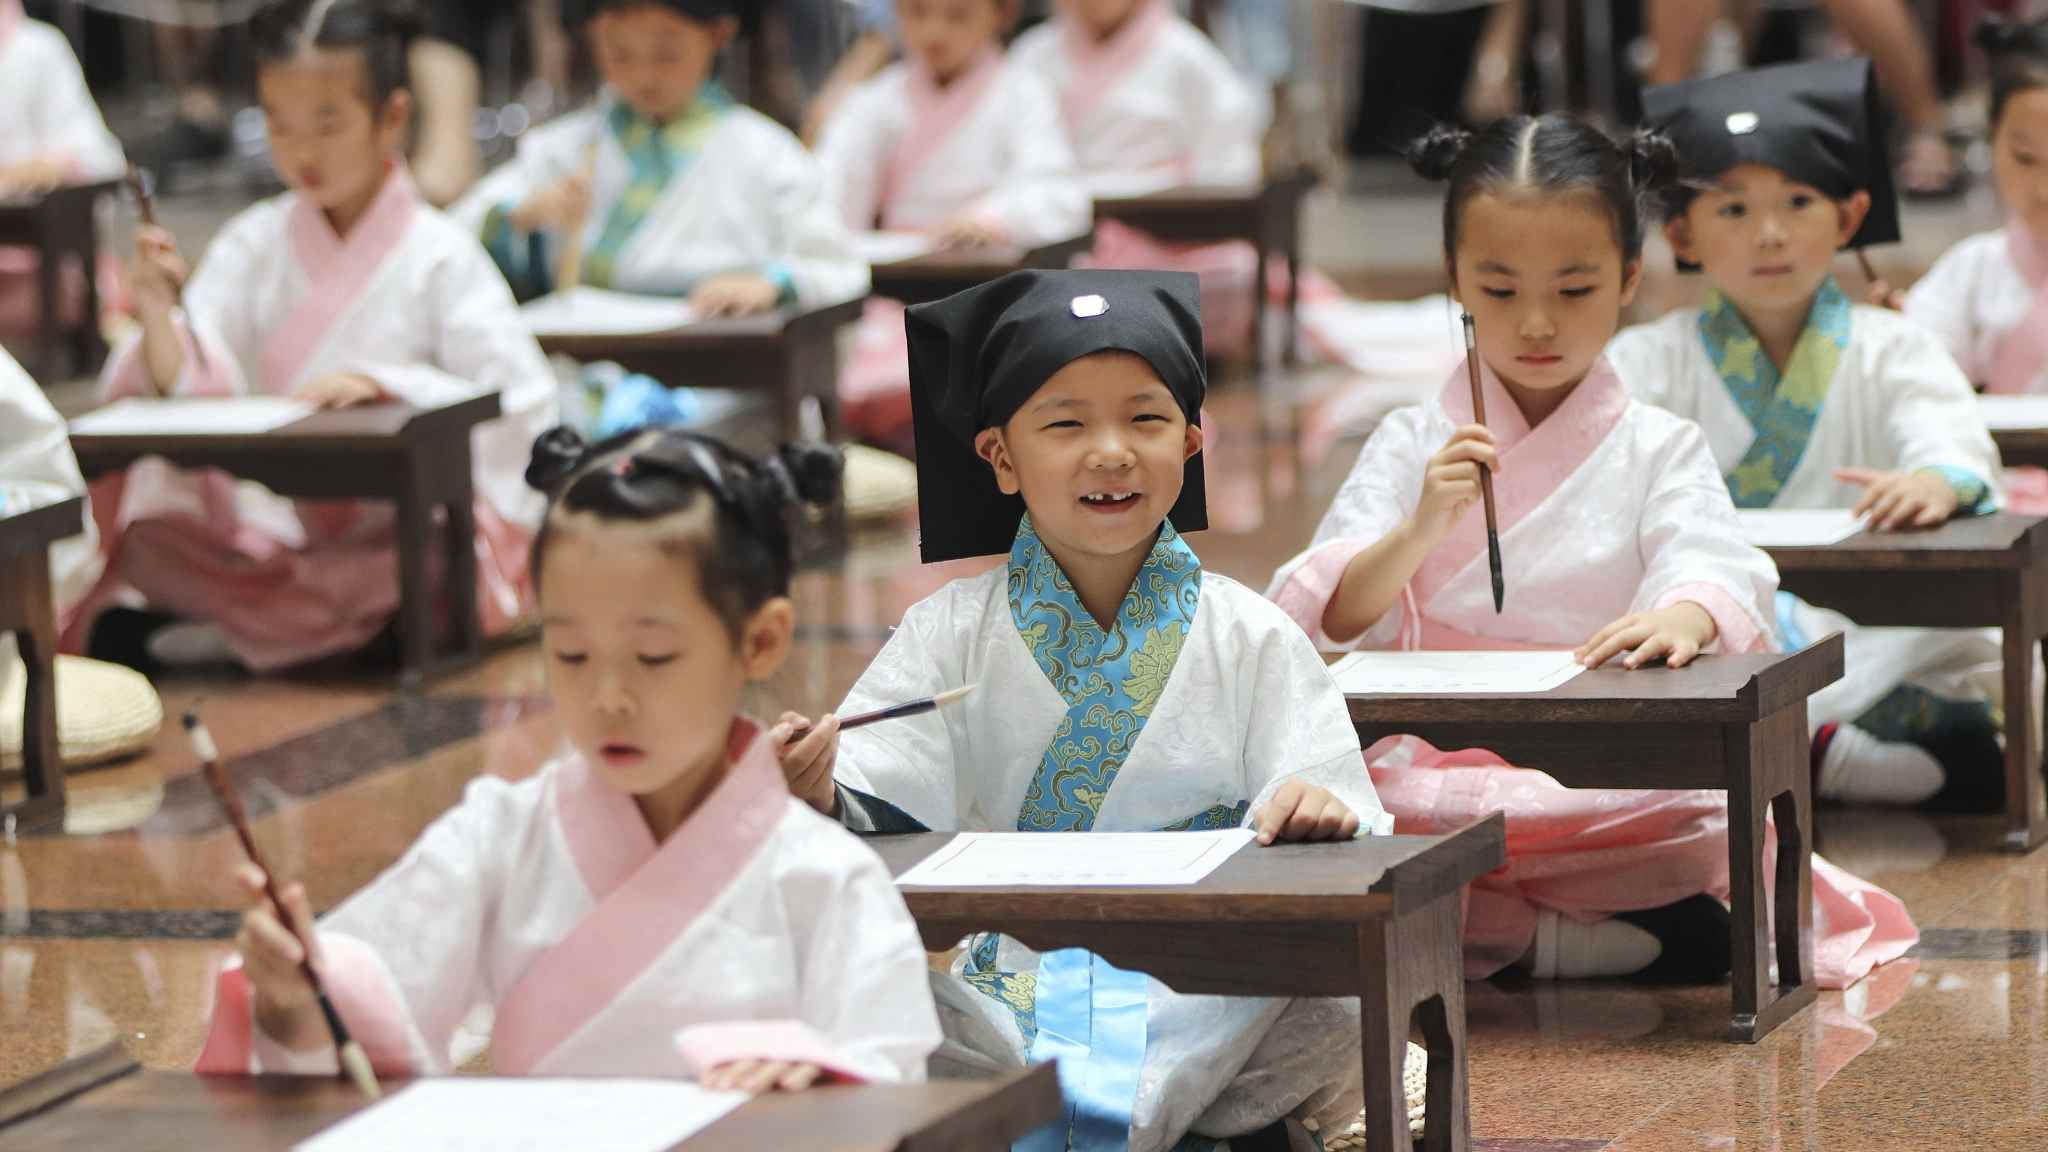 Children inspired by Chinese culture during school commencement season